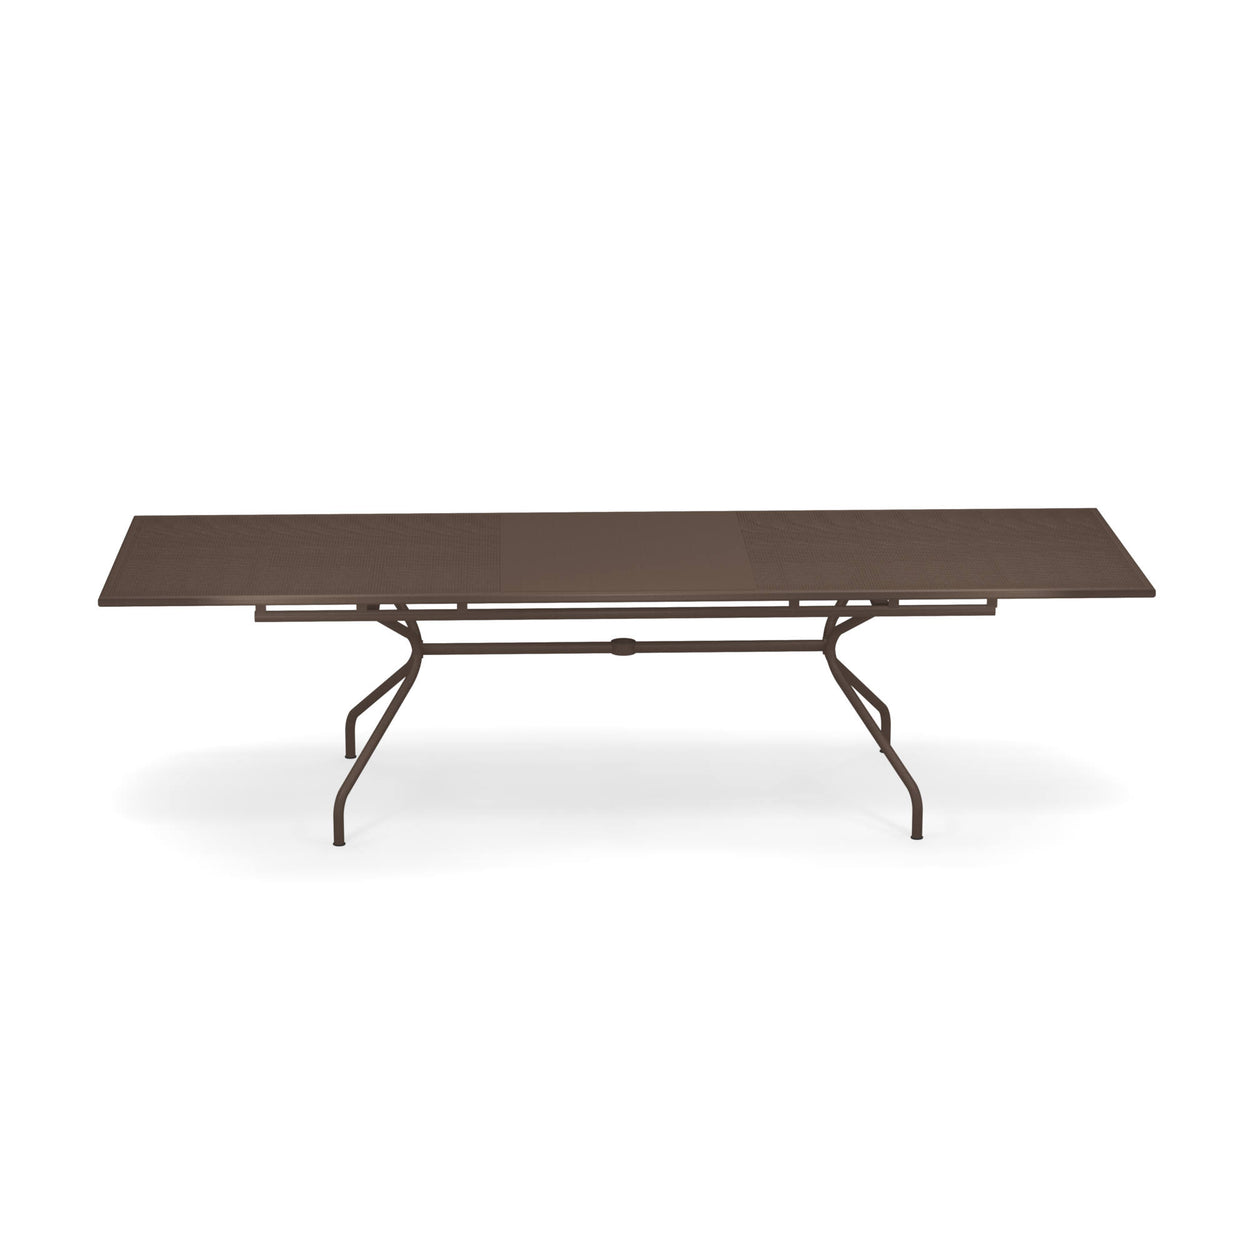 EMU Athena Rectangular Extending Table 230-300